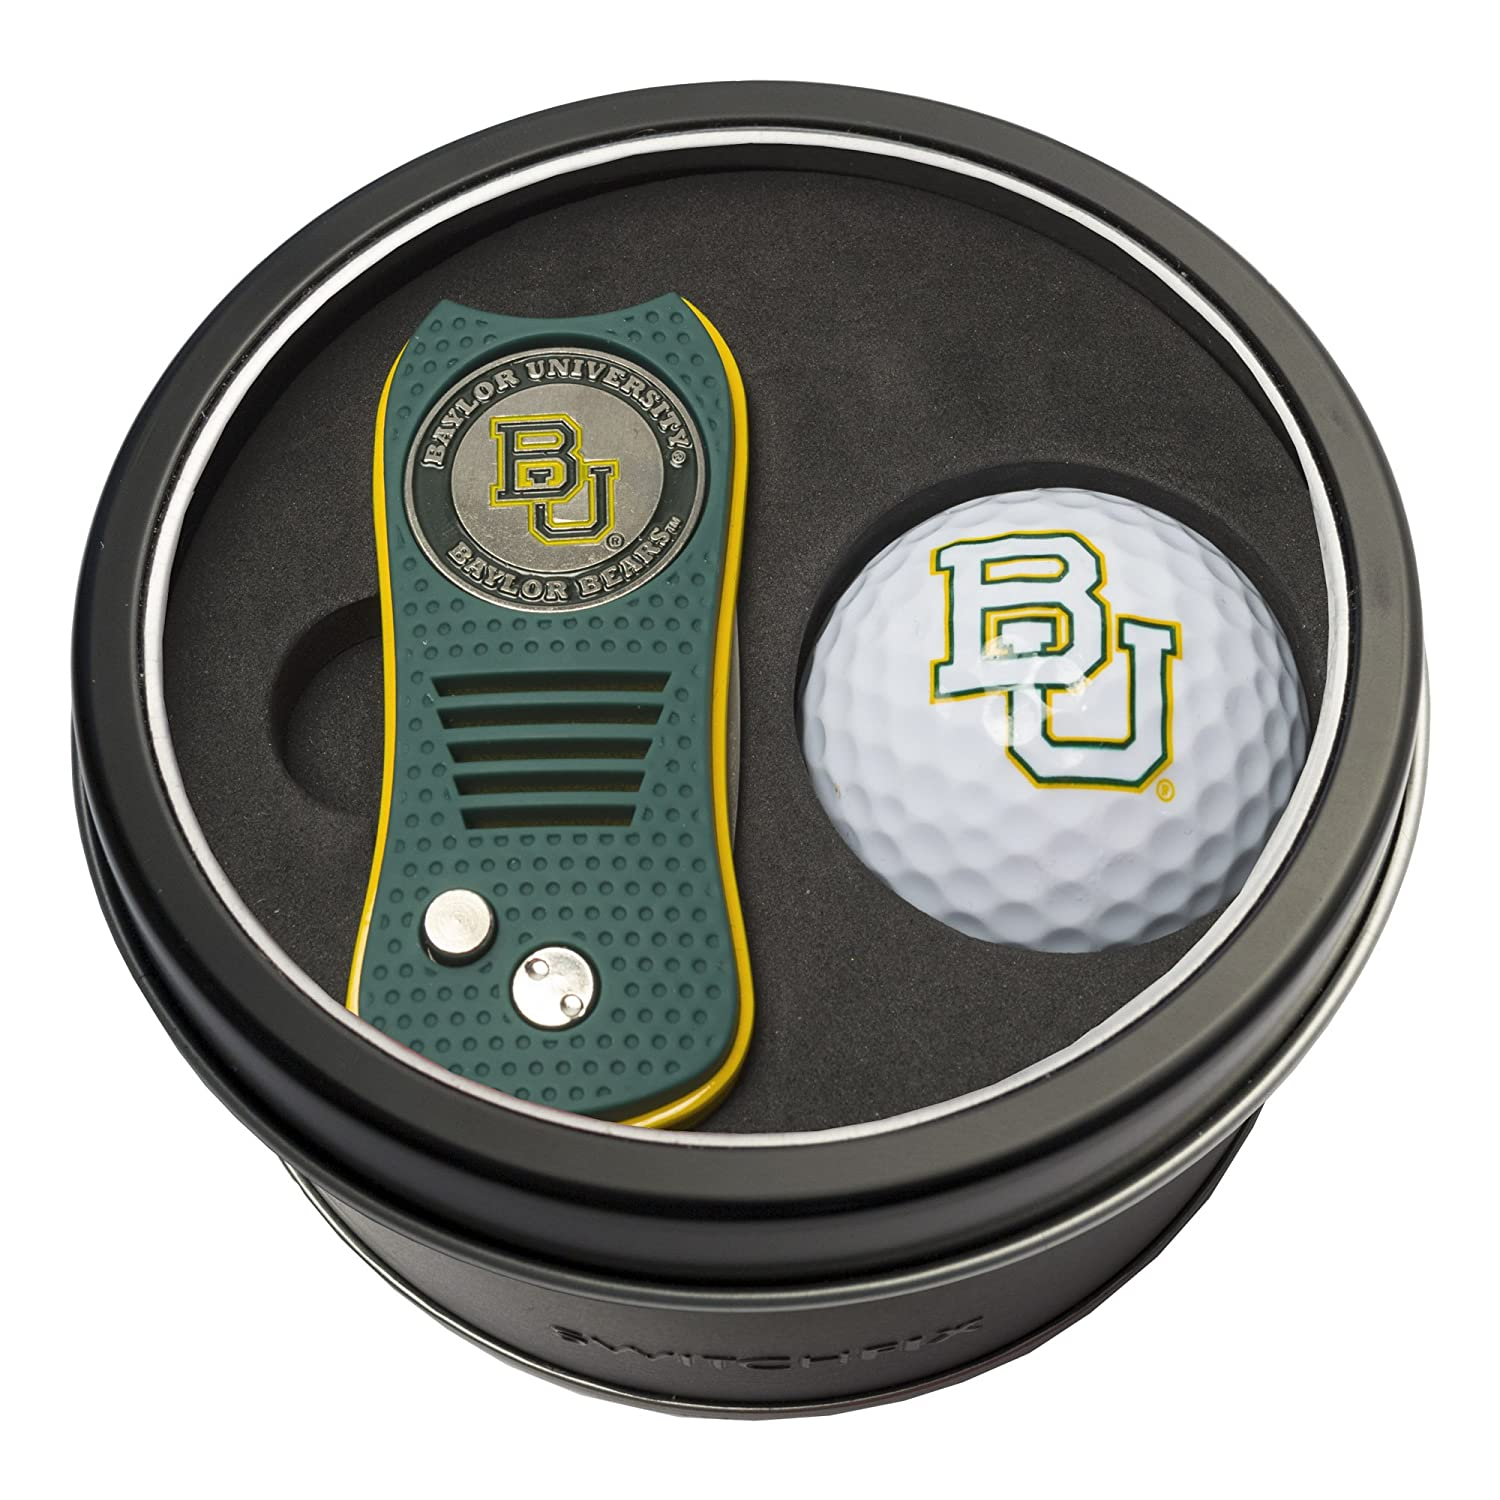 Team Golf NCAA Gift Set Switchfix Divot Tool with Double Sided Magnetic Ball Marker Golf Ball Patented Single Prong Design Less Damage to Greens Switchblade Mechanism